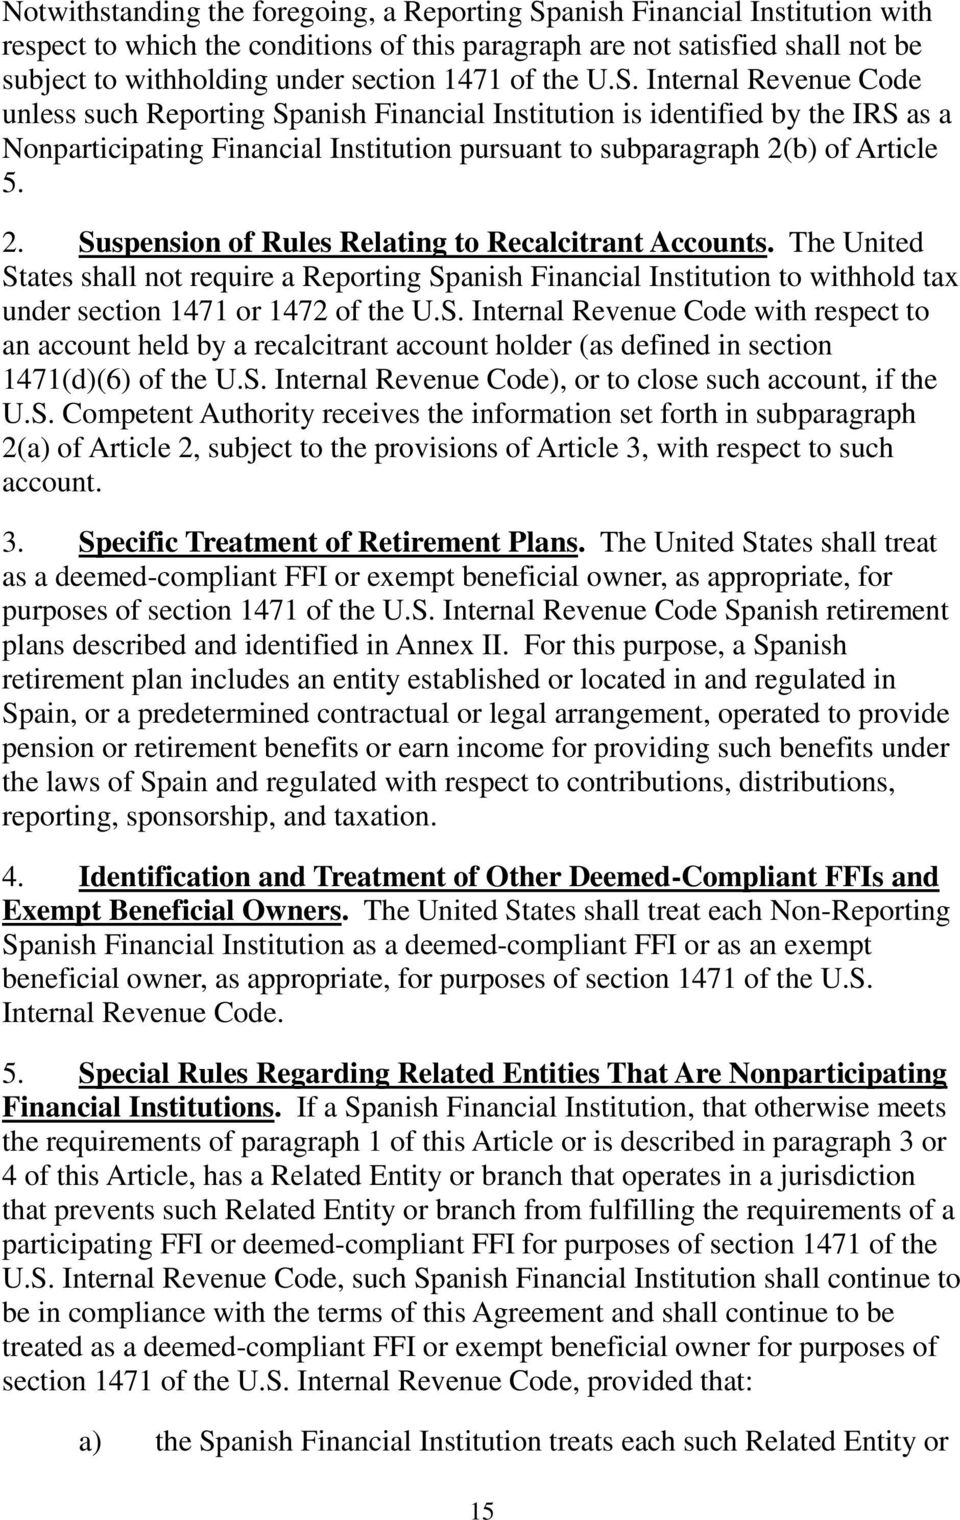 Internal Revenue Code unless such Reporting Spanish Financial Institution is identified by the IRS as a Nonparticipating Financial Institution pursuant to subparagraph 2(